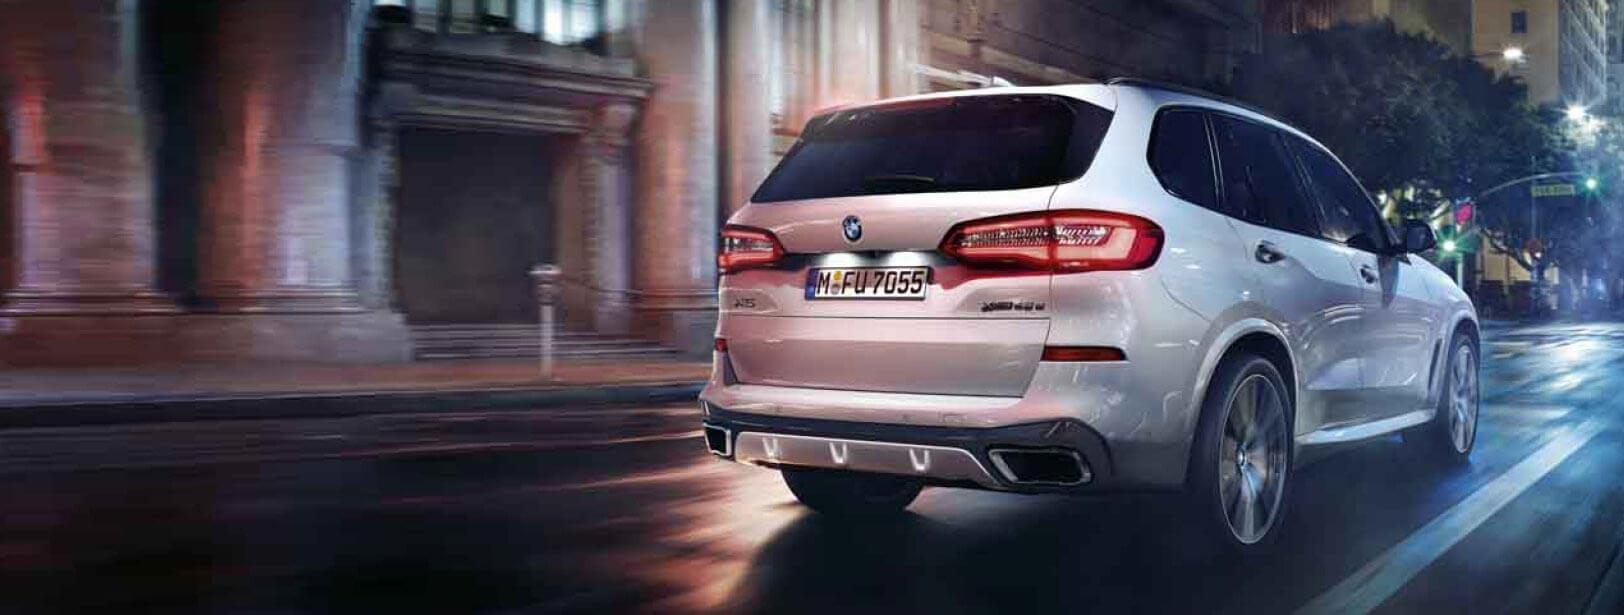 THE X5: DER BMW X5 xDRIVE45e PLUG-IN-HYBRID